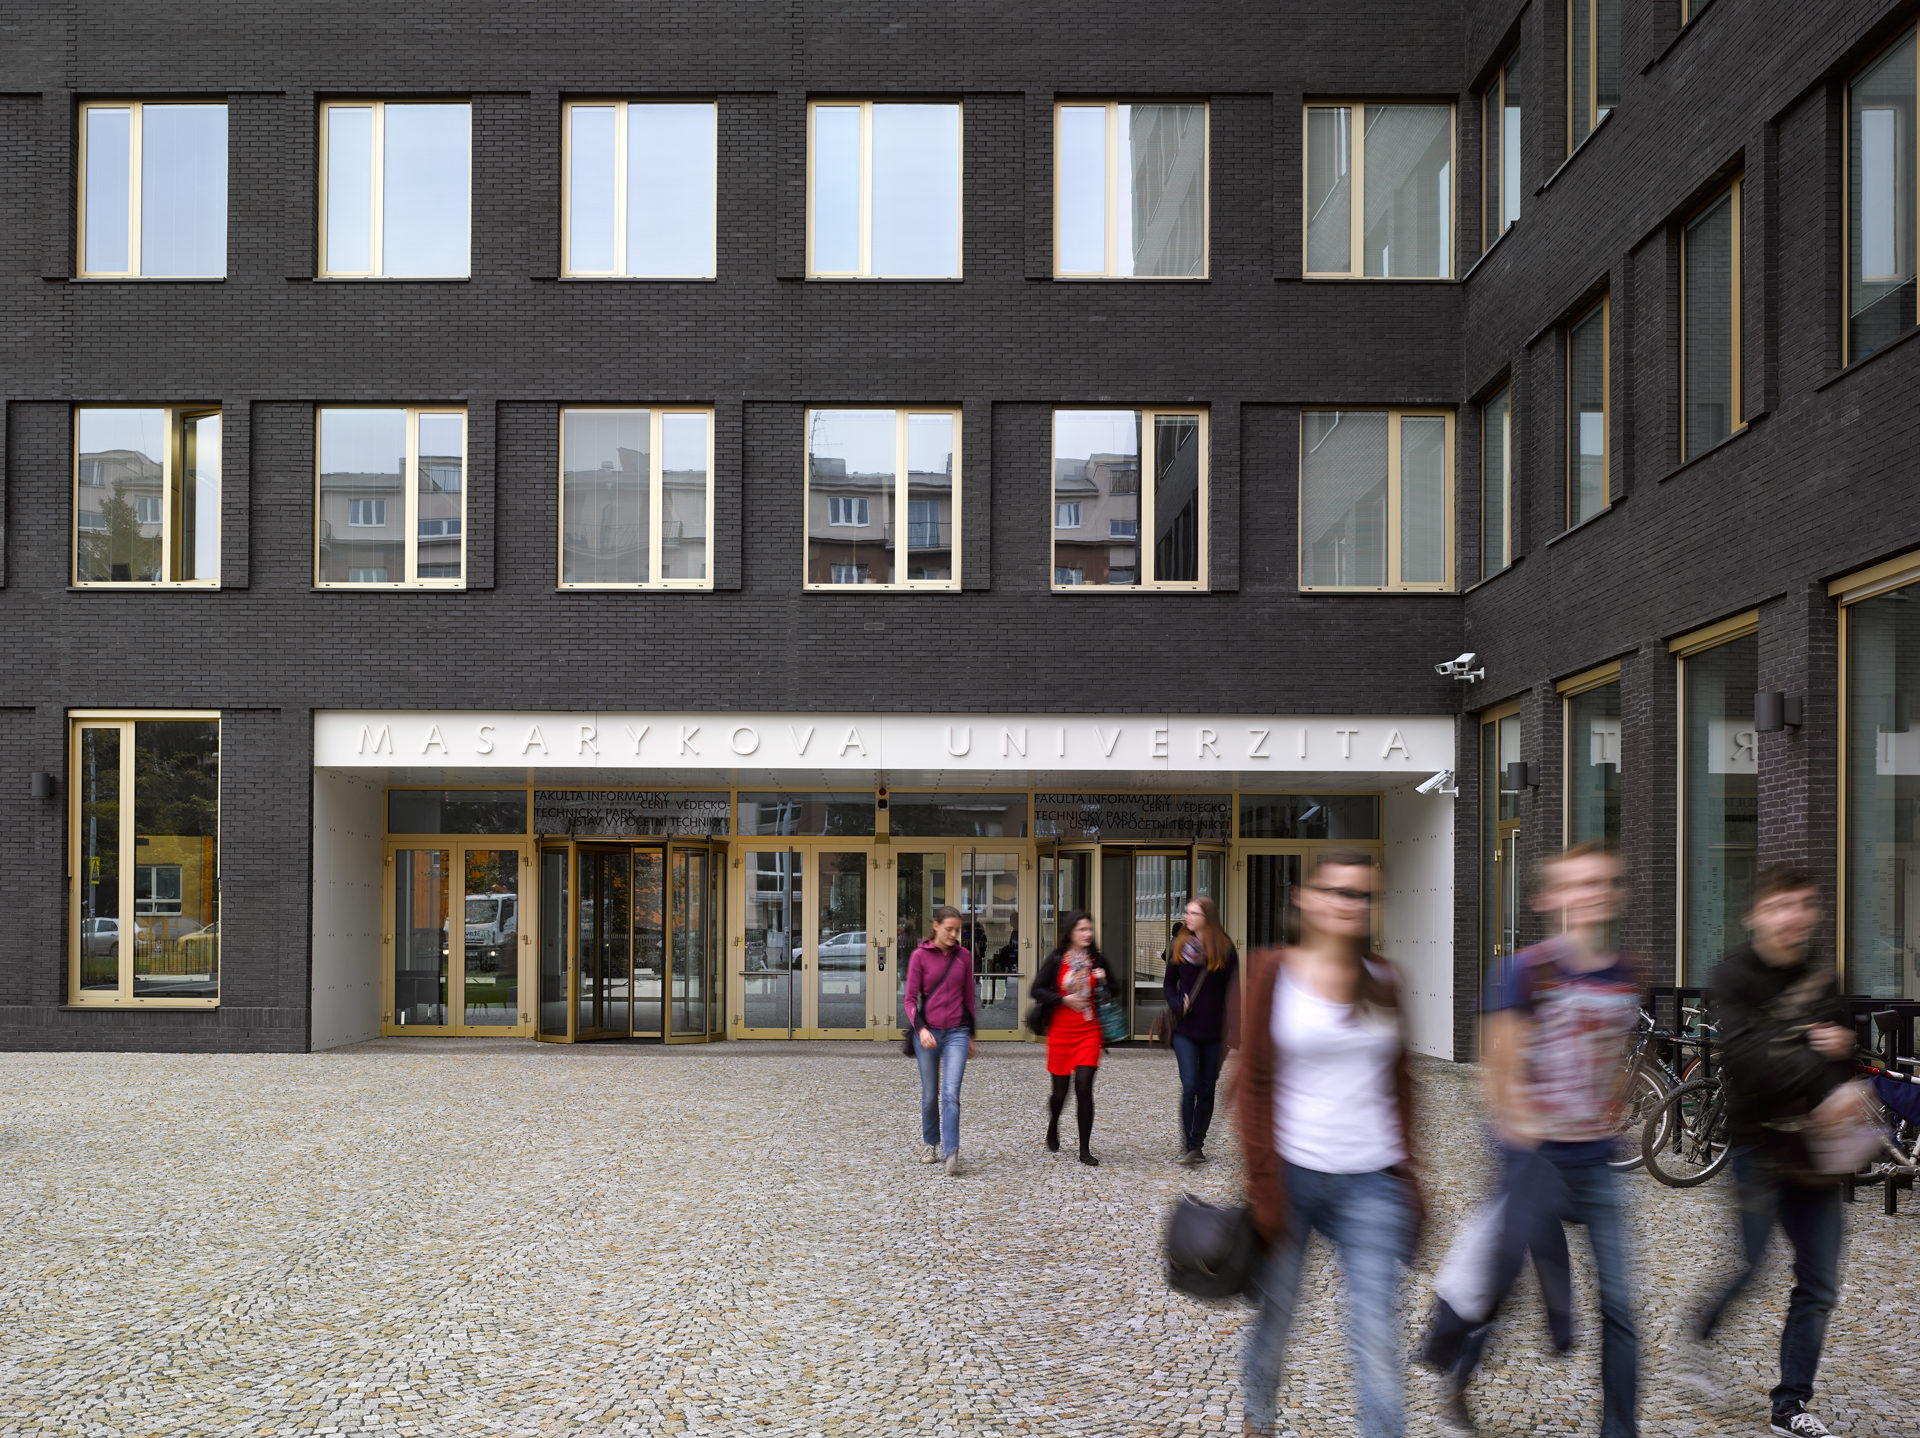 Faculty of Informatics, Masaryk University, Brno